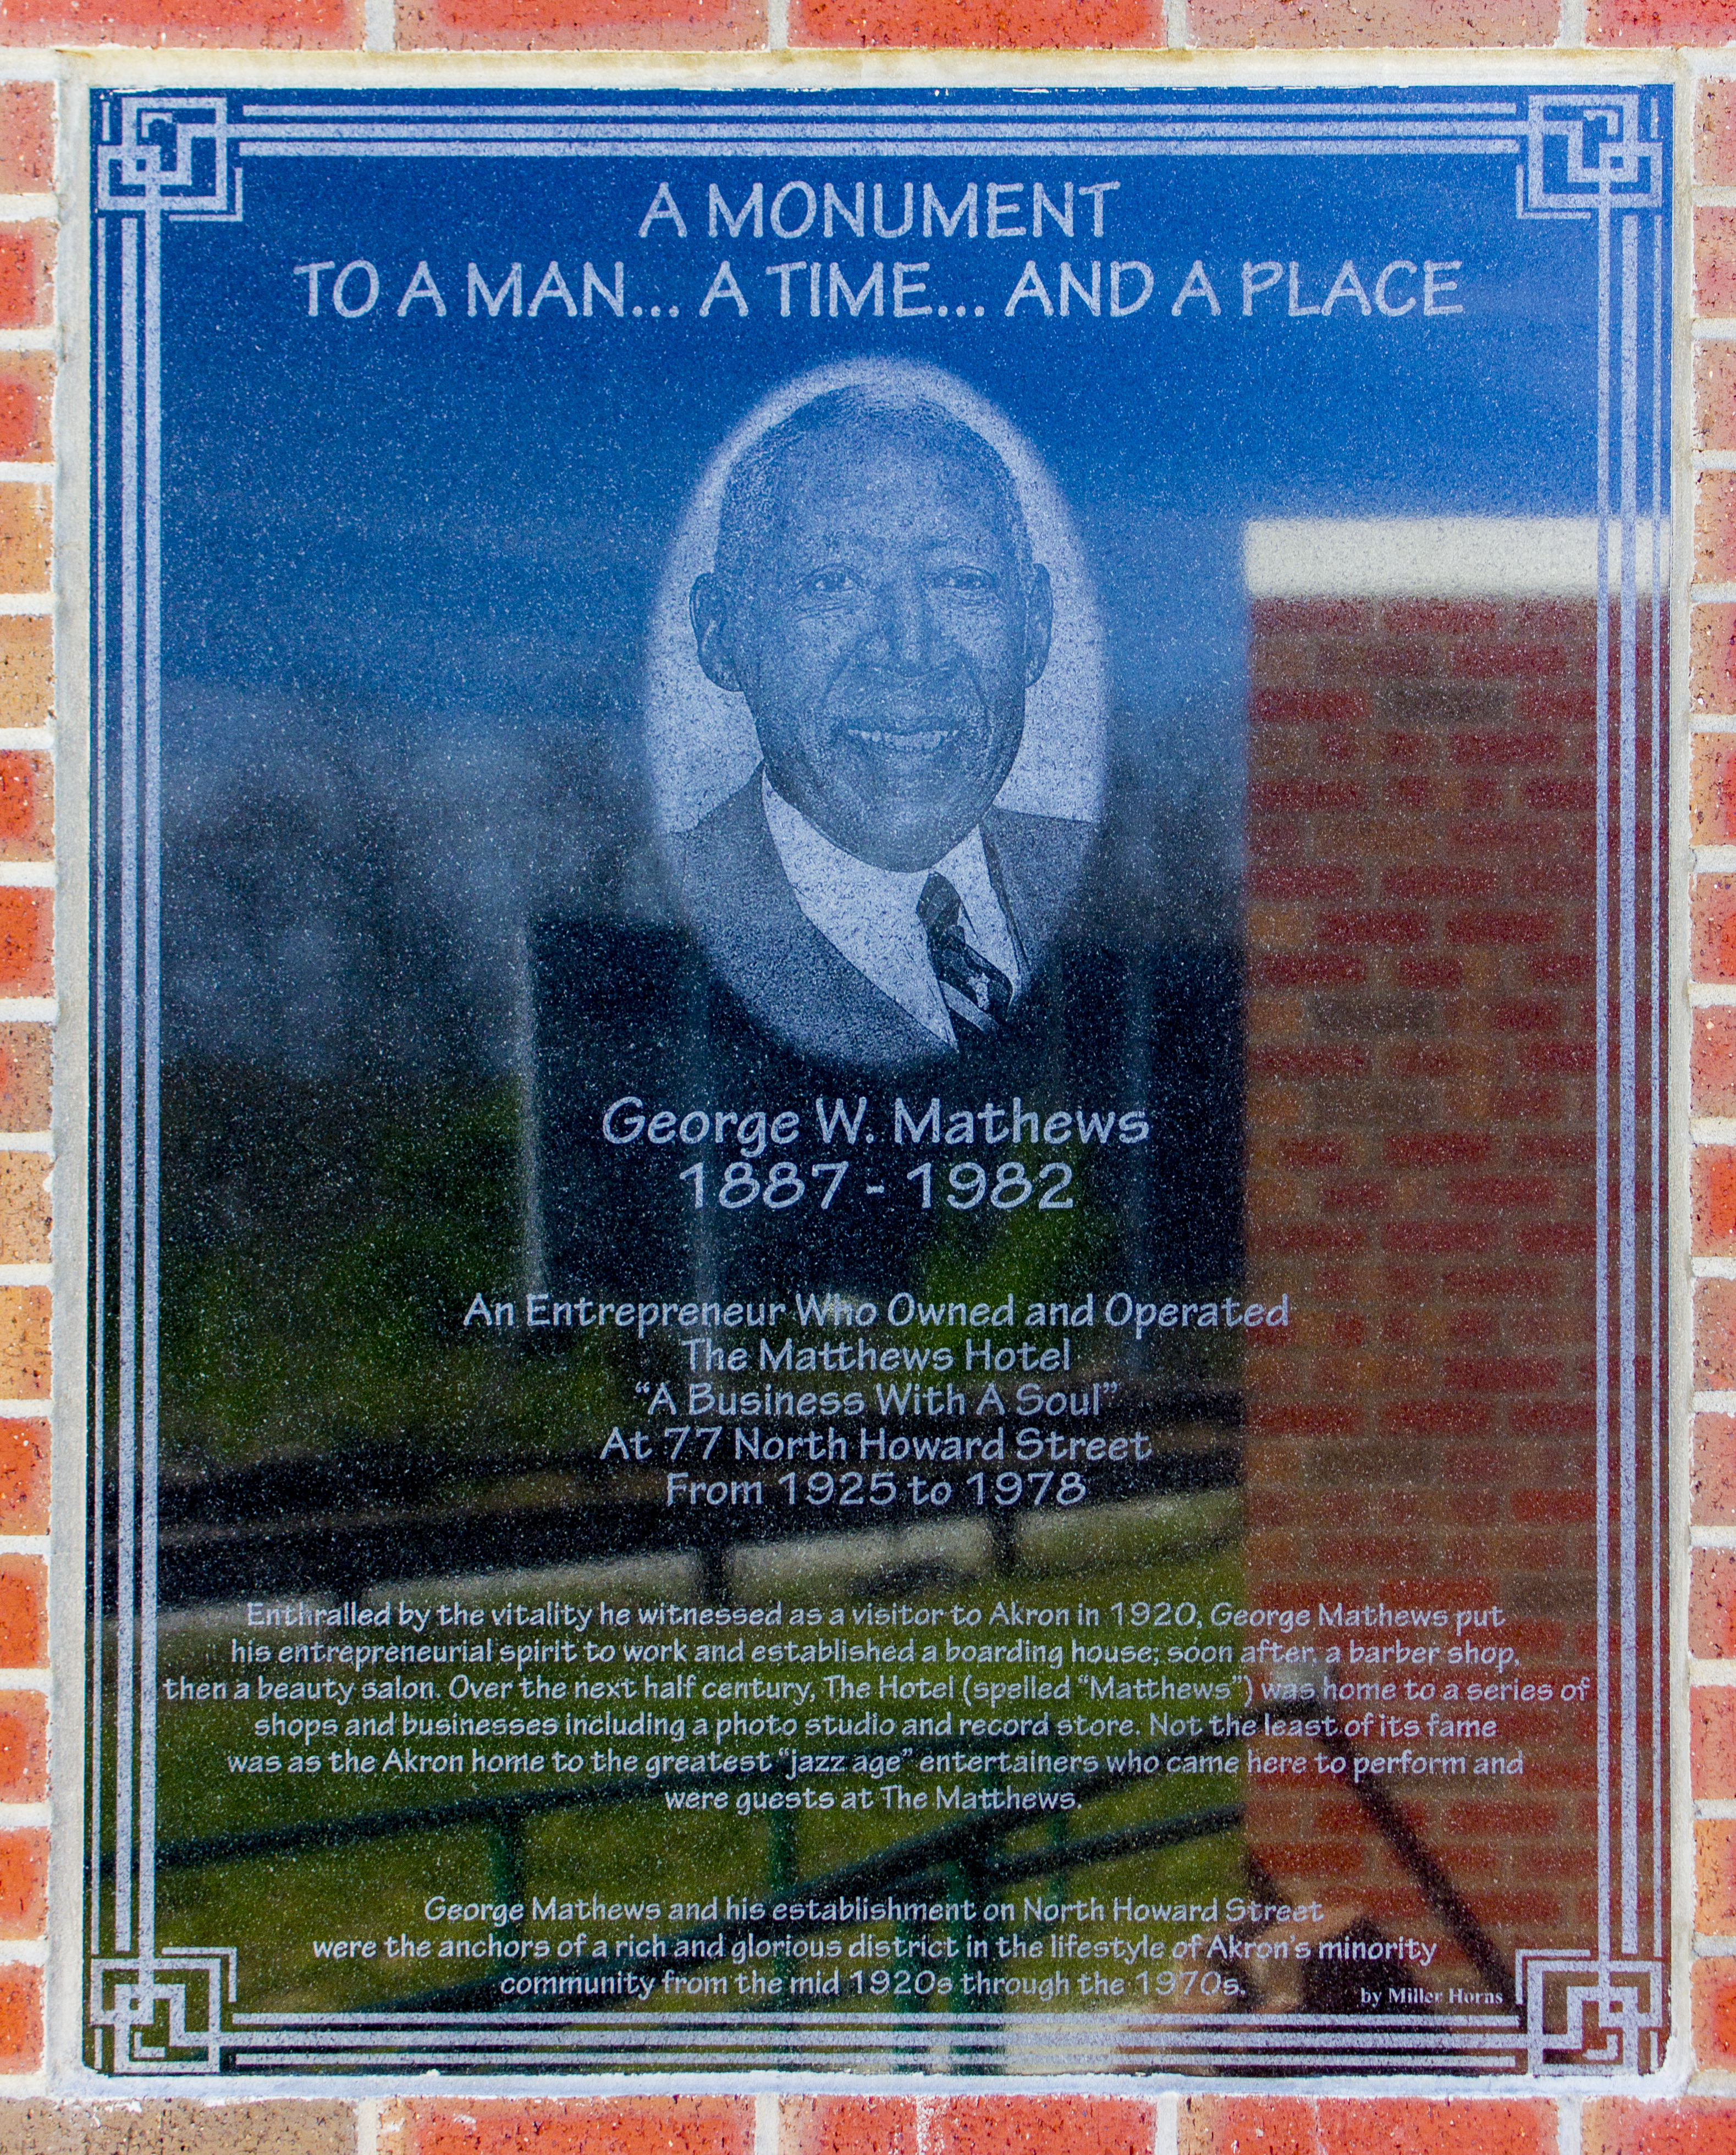 A modest plaque honoring the accomplishments of George W. Mathews, a business leader in the Howard Street district.